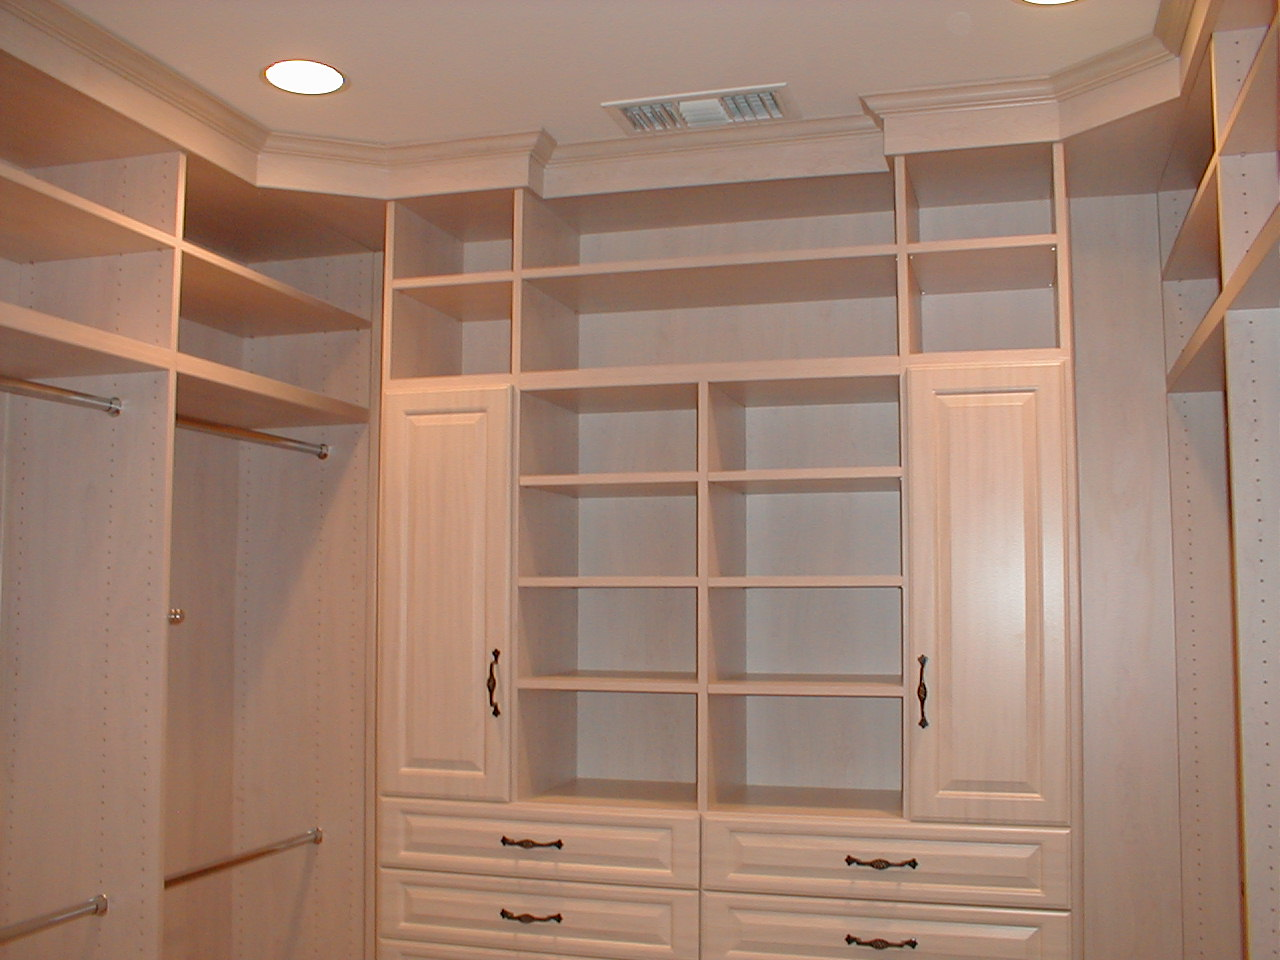 About walk in closets